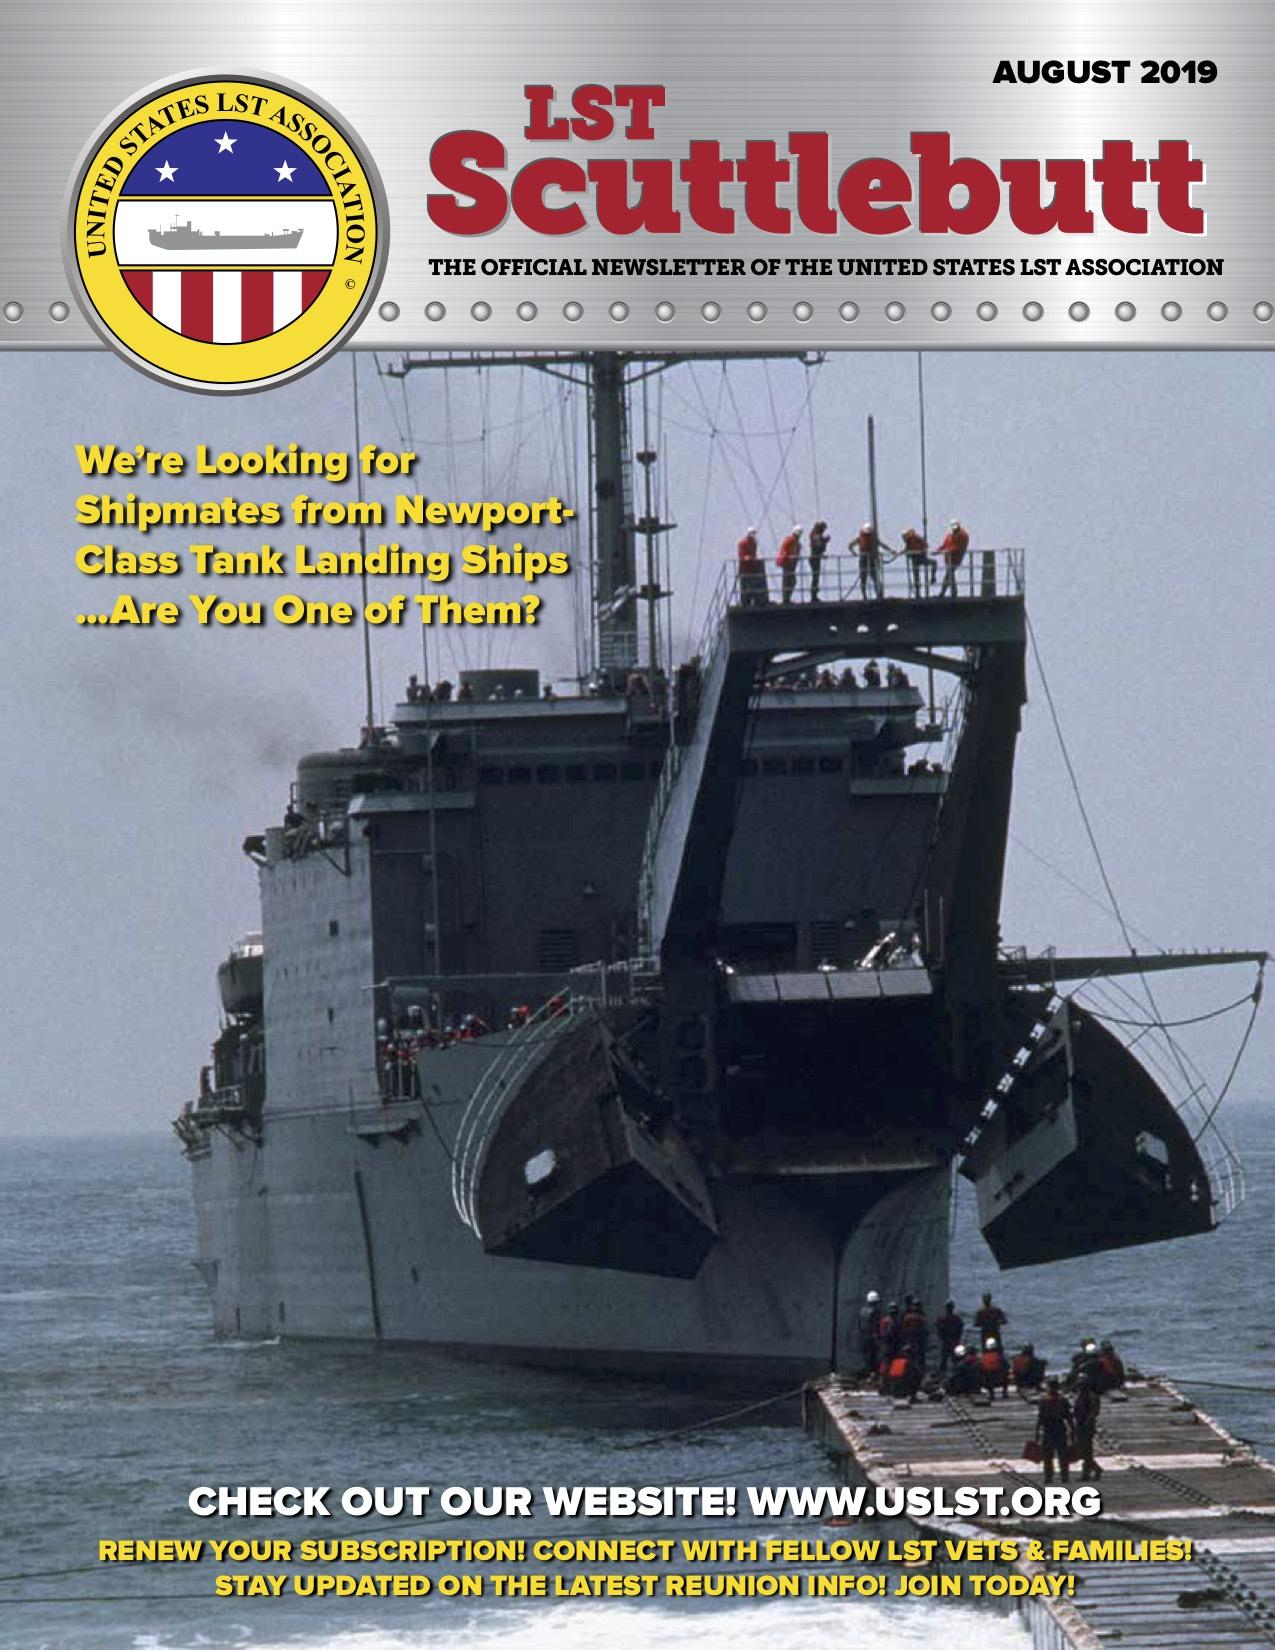 Scuttlebutt Issue 20 August 2019 COVER